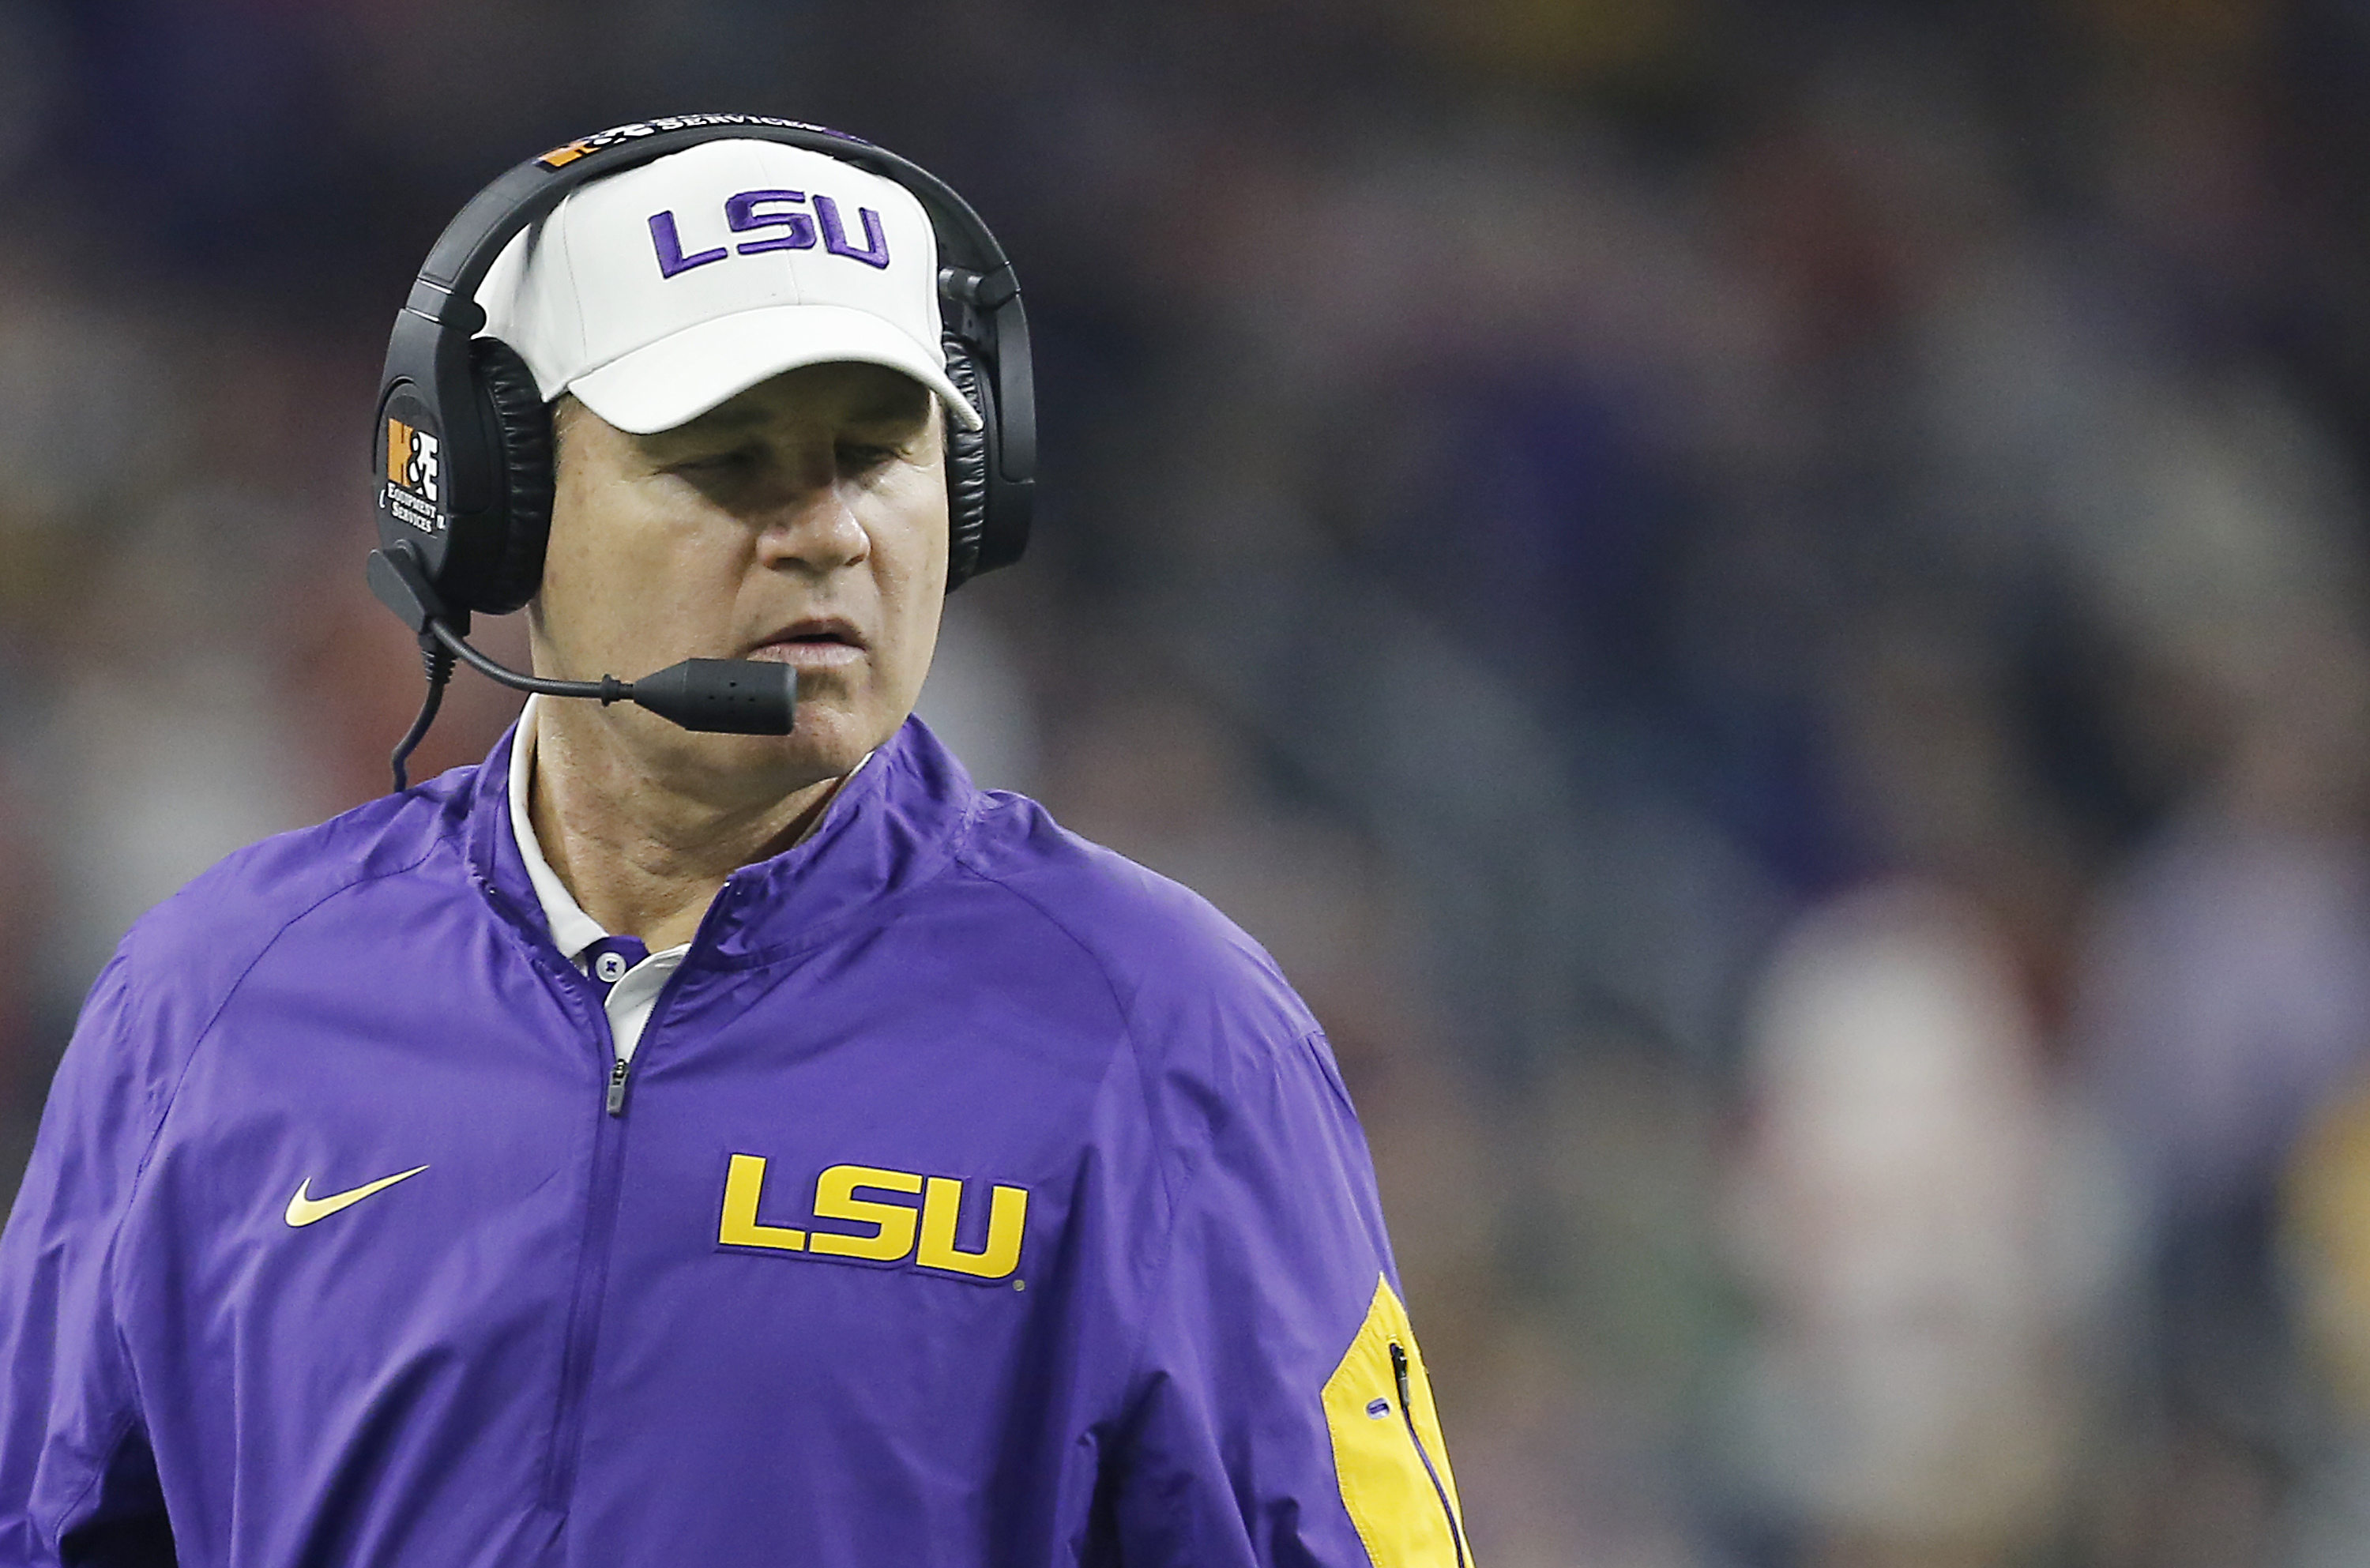 LSU coach Les Miles has the top-ranked recruiting class entering National Signing Day (Photo: Thomas B. Shea, USA TODAY Sports)